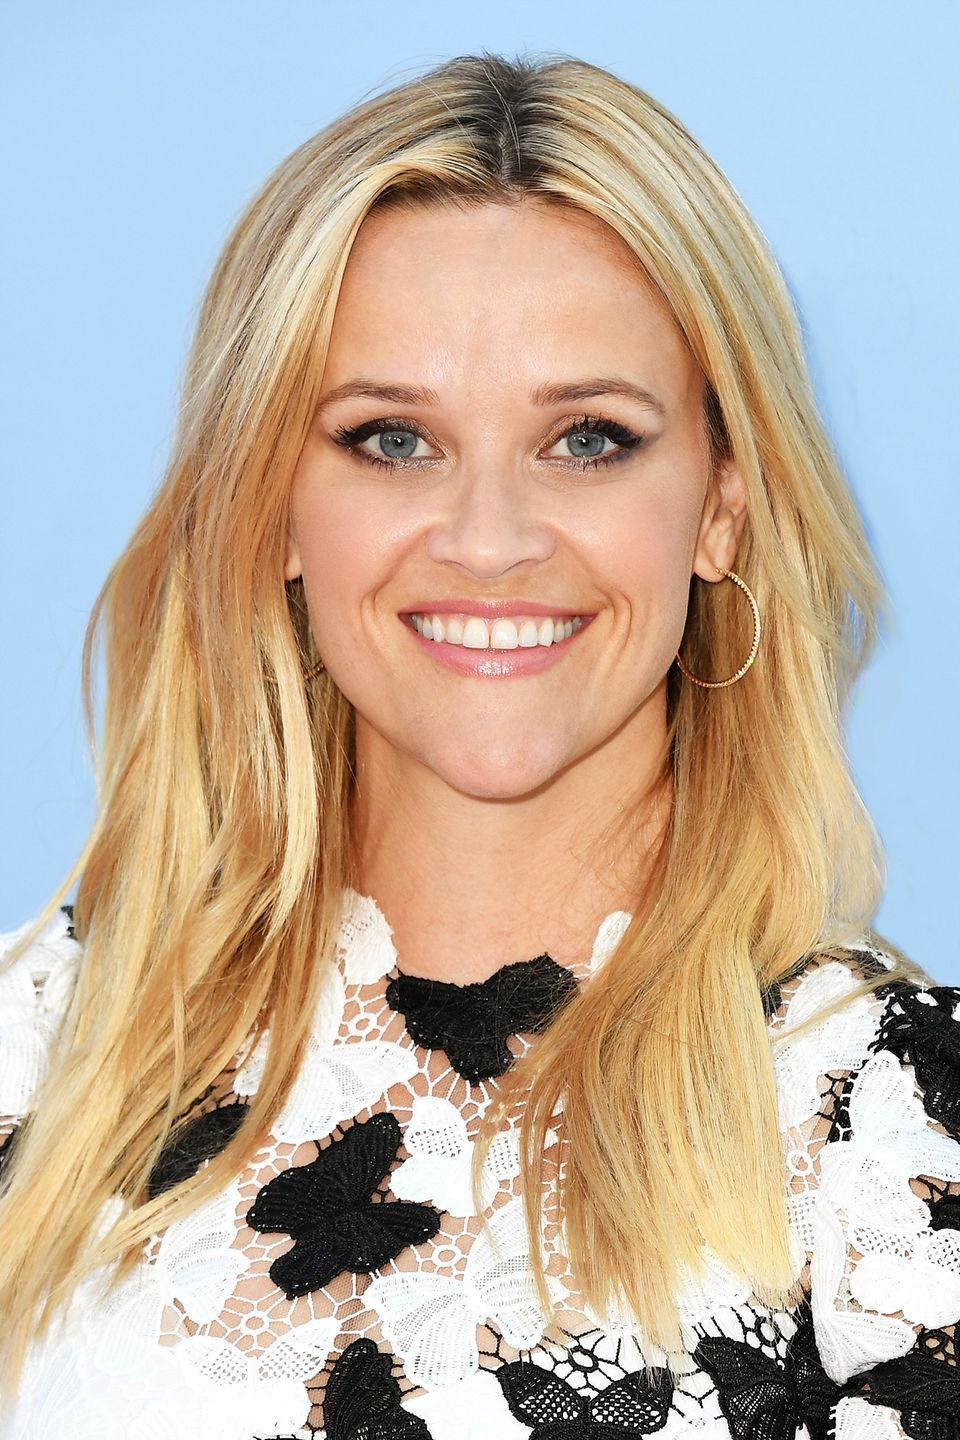 """<p>Request warm-toned highlights rather than more summery champagne or platinum for hair like <strong>Reese Witherspoon</strong>'s, says <a href=""""https://ritahazan.com/"""" rel=""""nofollow noopener"""" target=""""_blank"""" data-ylk=""""slk:Rita Hazan"""" class=""""link rapid-noclick-resp"""">Rita Hazan</a>, a celebrity colorist in New York City, who's created custom hues for celebs like J.Lo and Madonna. If you're dyeing your hair at home, add ribbons of highlights using a color kit no more than two shades lighter than your base; look for terms like """"warm,"""" """"golden,"""" """"honey,"""" """"butter"""" and """"buttery.""""</p>"""